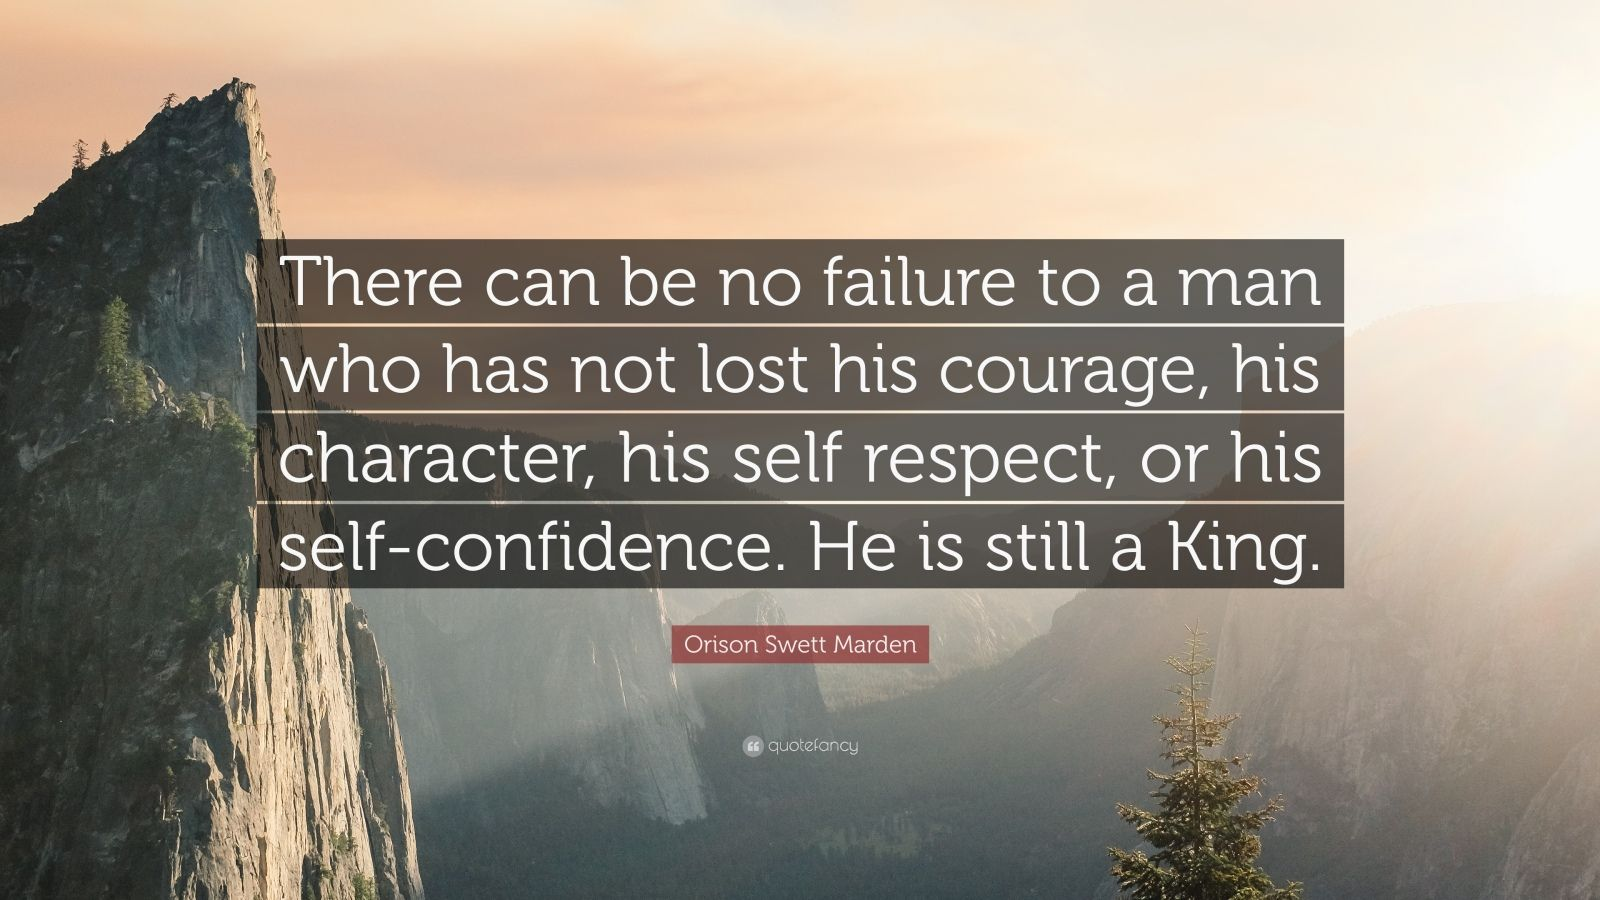 """Orison Swett Marden Quote: """"There can be no failure to a man who has not lost his courage, his character, his self respect, or his self-confidence. He is still a King."""""""